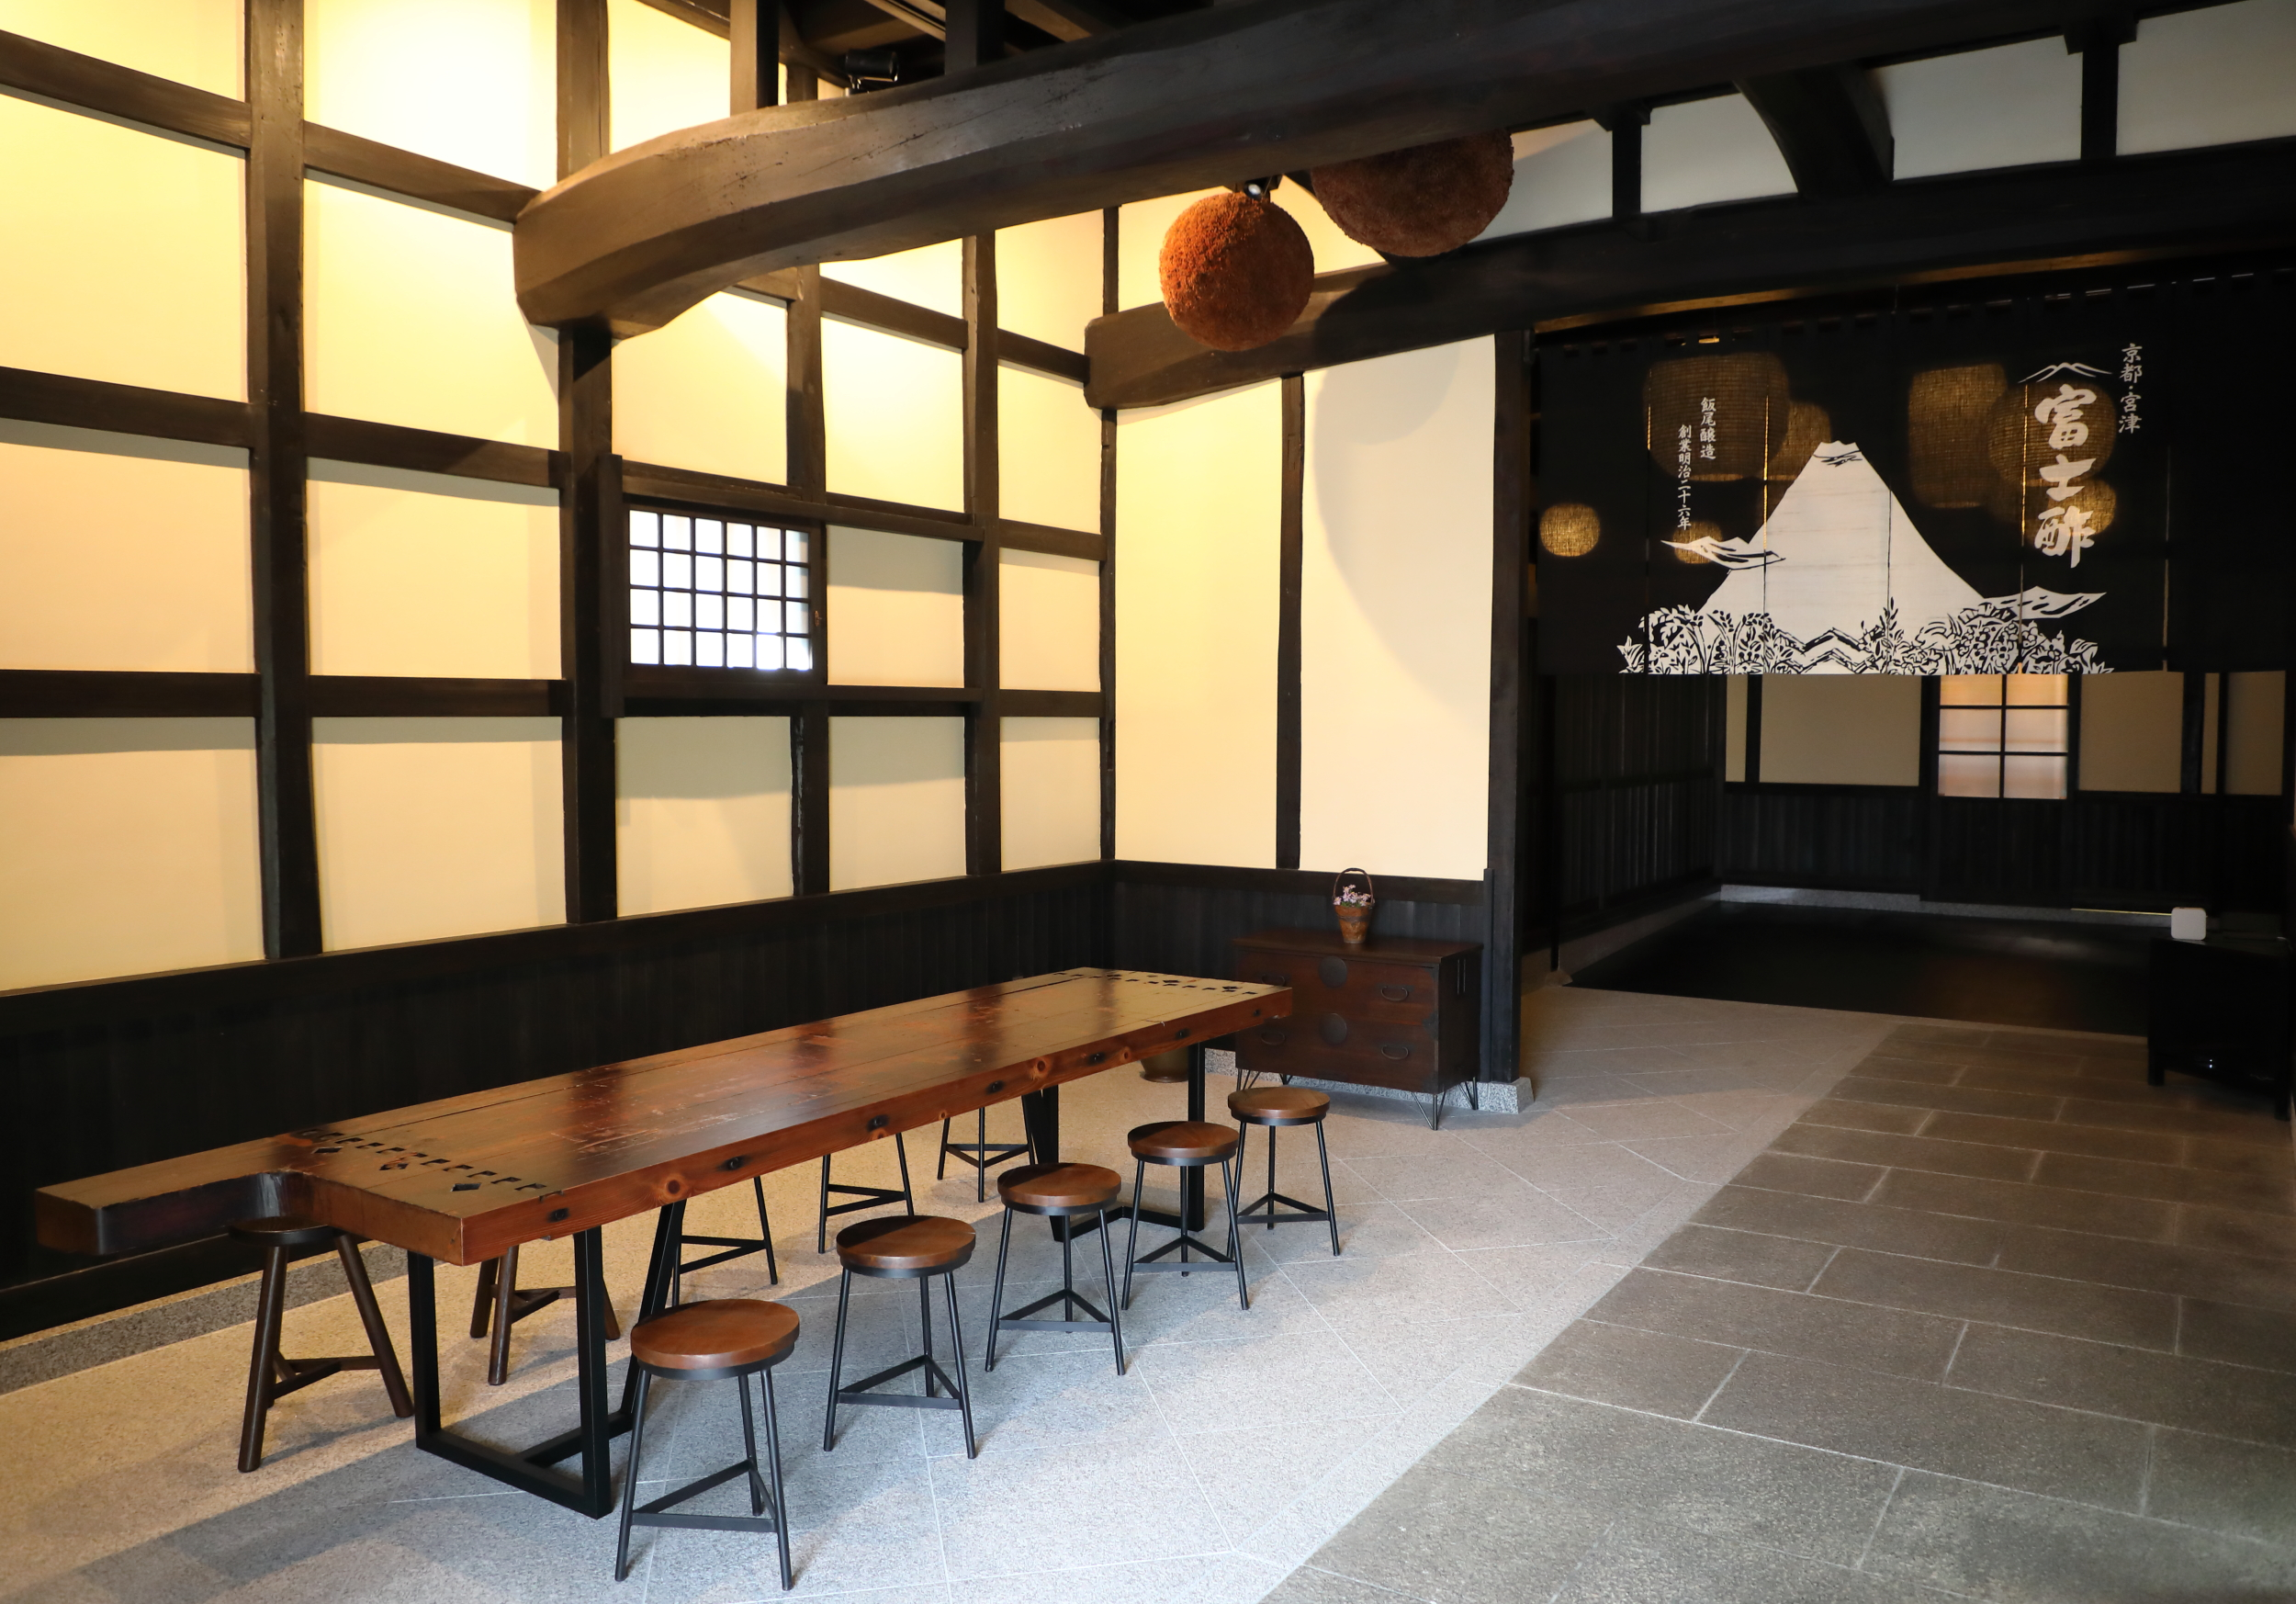 The newly expanded tasting room at the Iio Jozo Brewery, where Akihiro recently hosted twenty chefs visiting from the Culinary Institute of America.